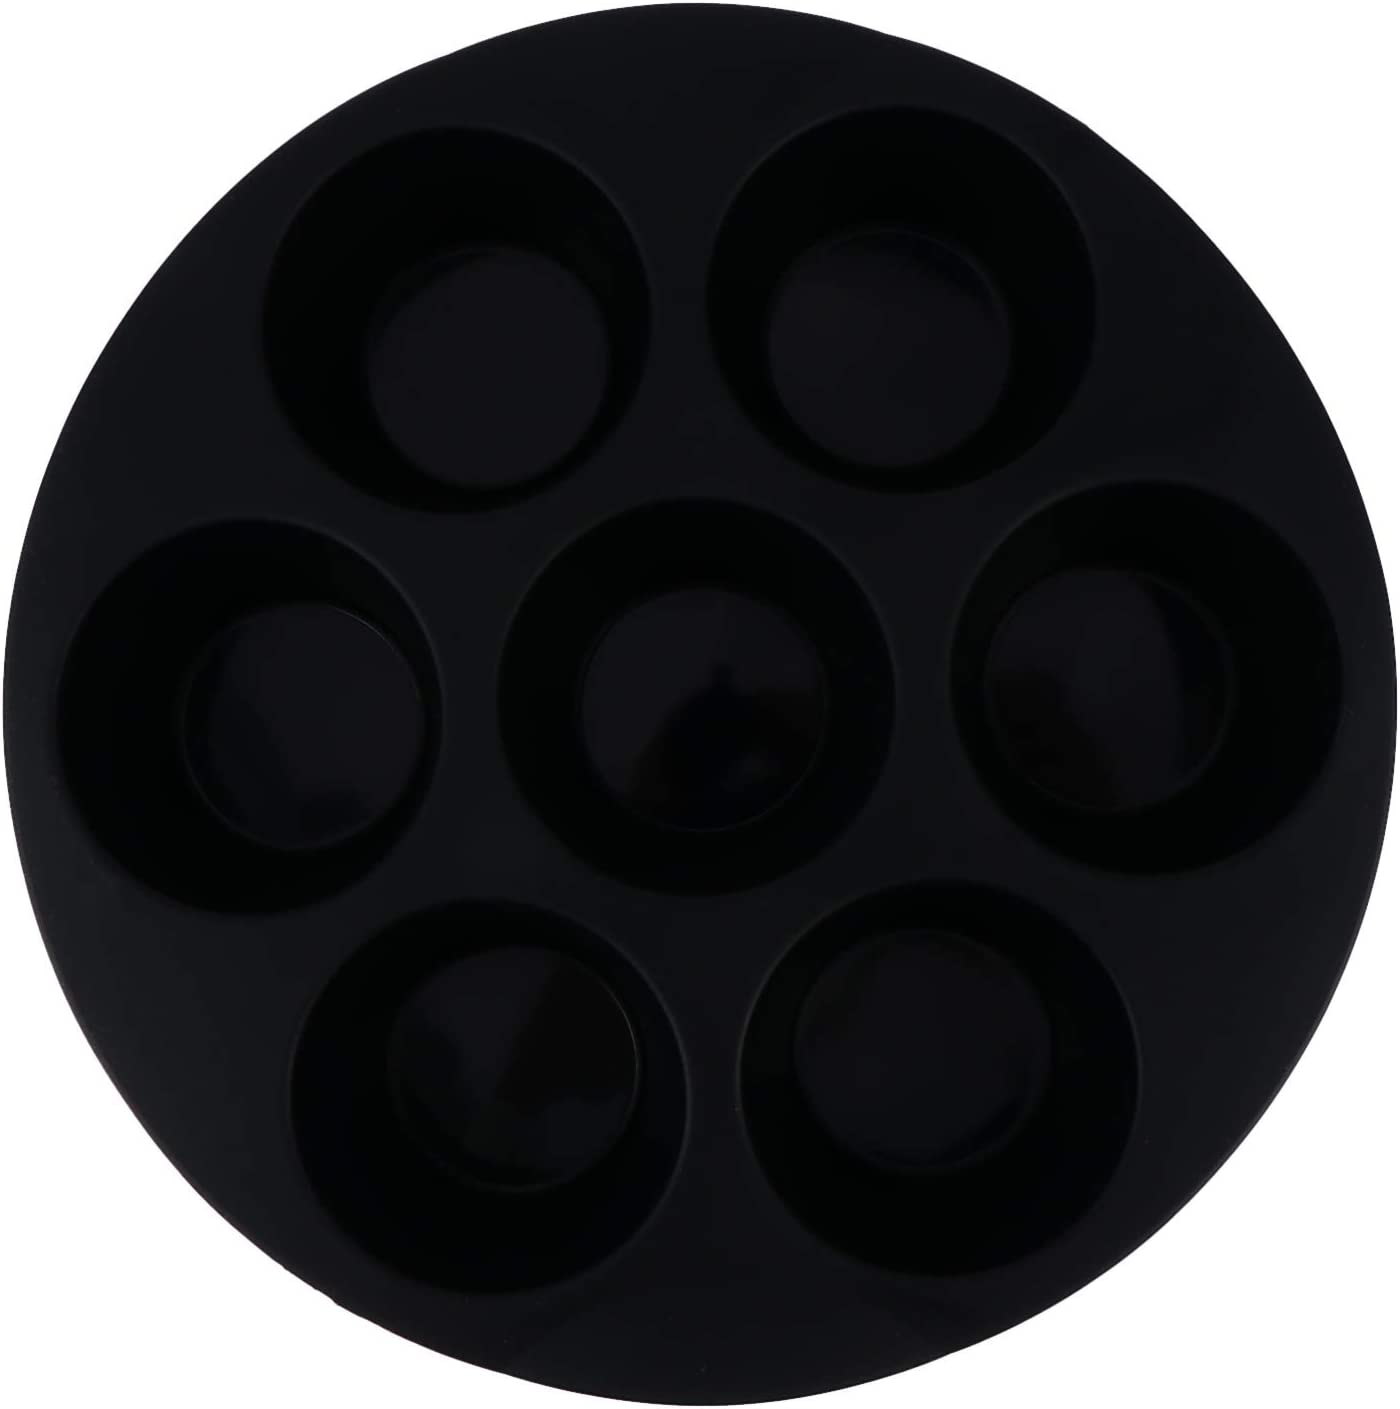 Cabilock Silicone Muffin Cake Cups Silicone Muffin Pan 7 Cup Non- Stick Cupcake Tin Tray Baking Mold for Air Fryer Chocolate Kitchen Tools 8 inch